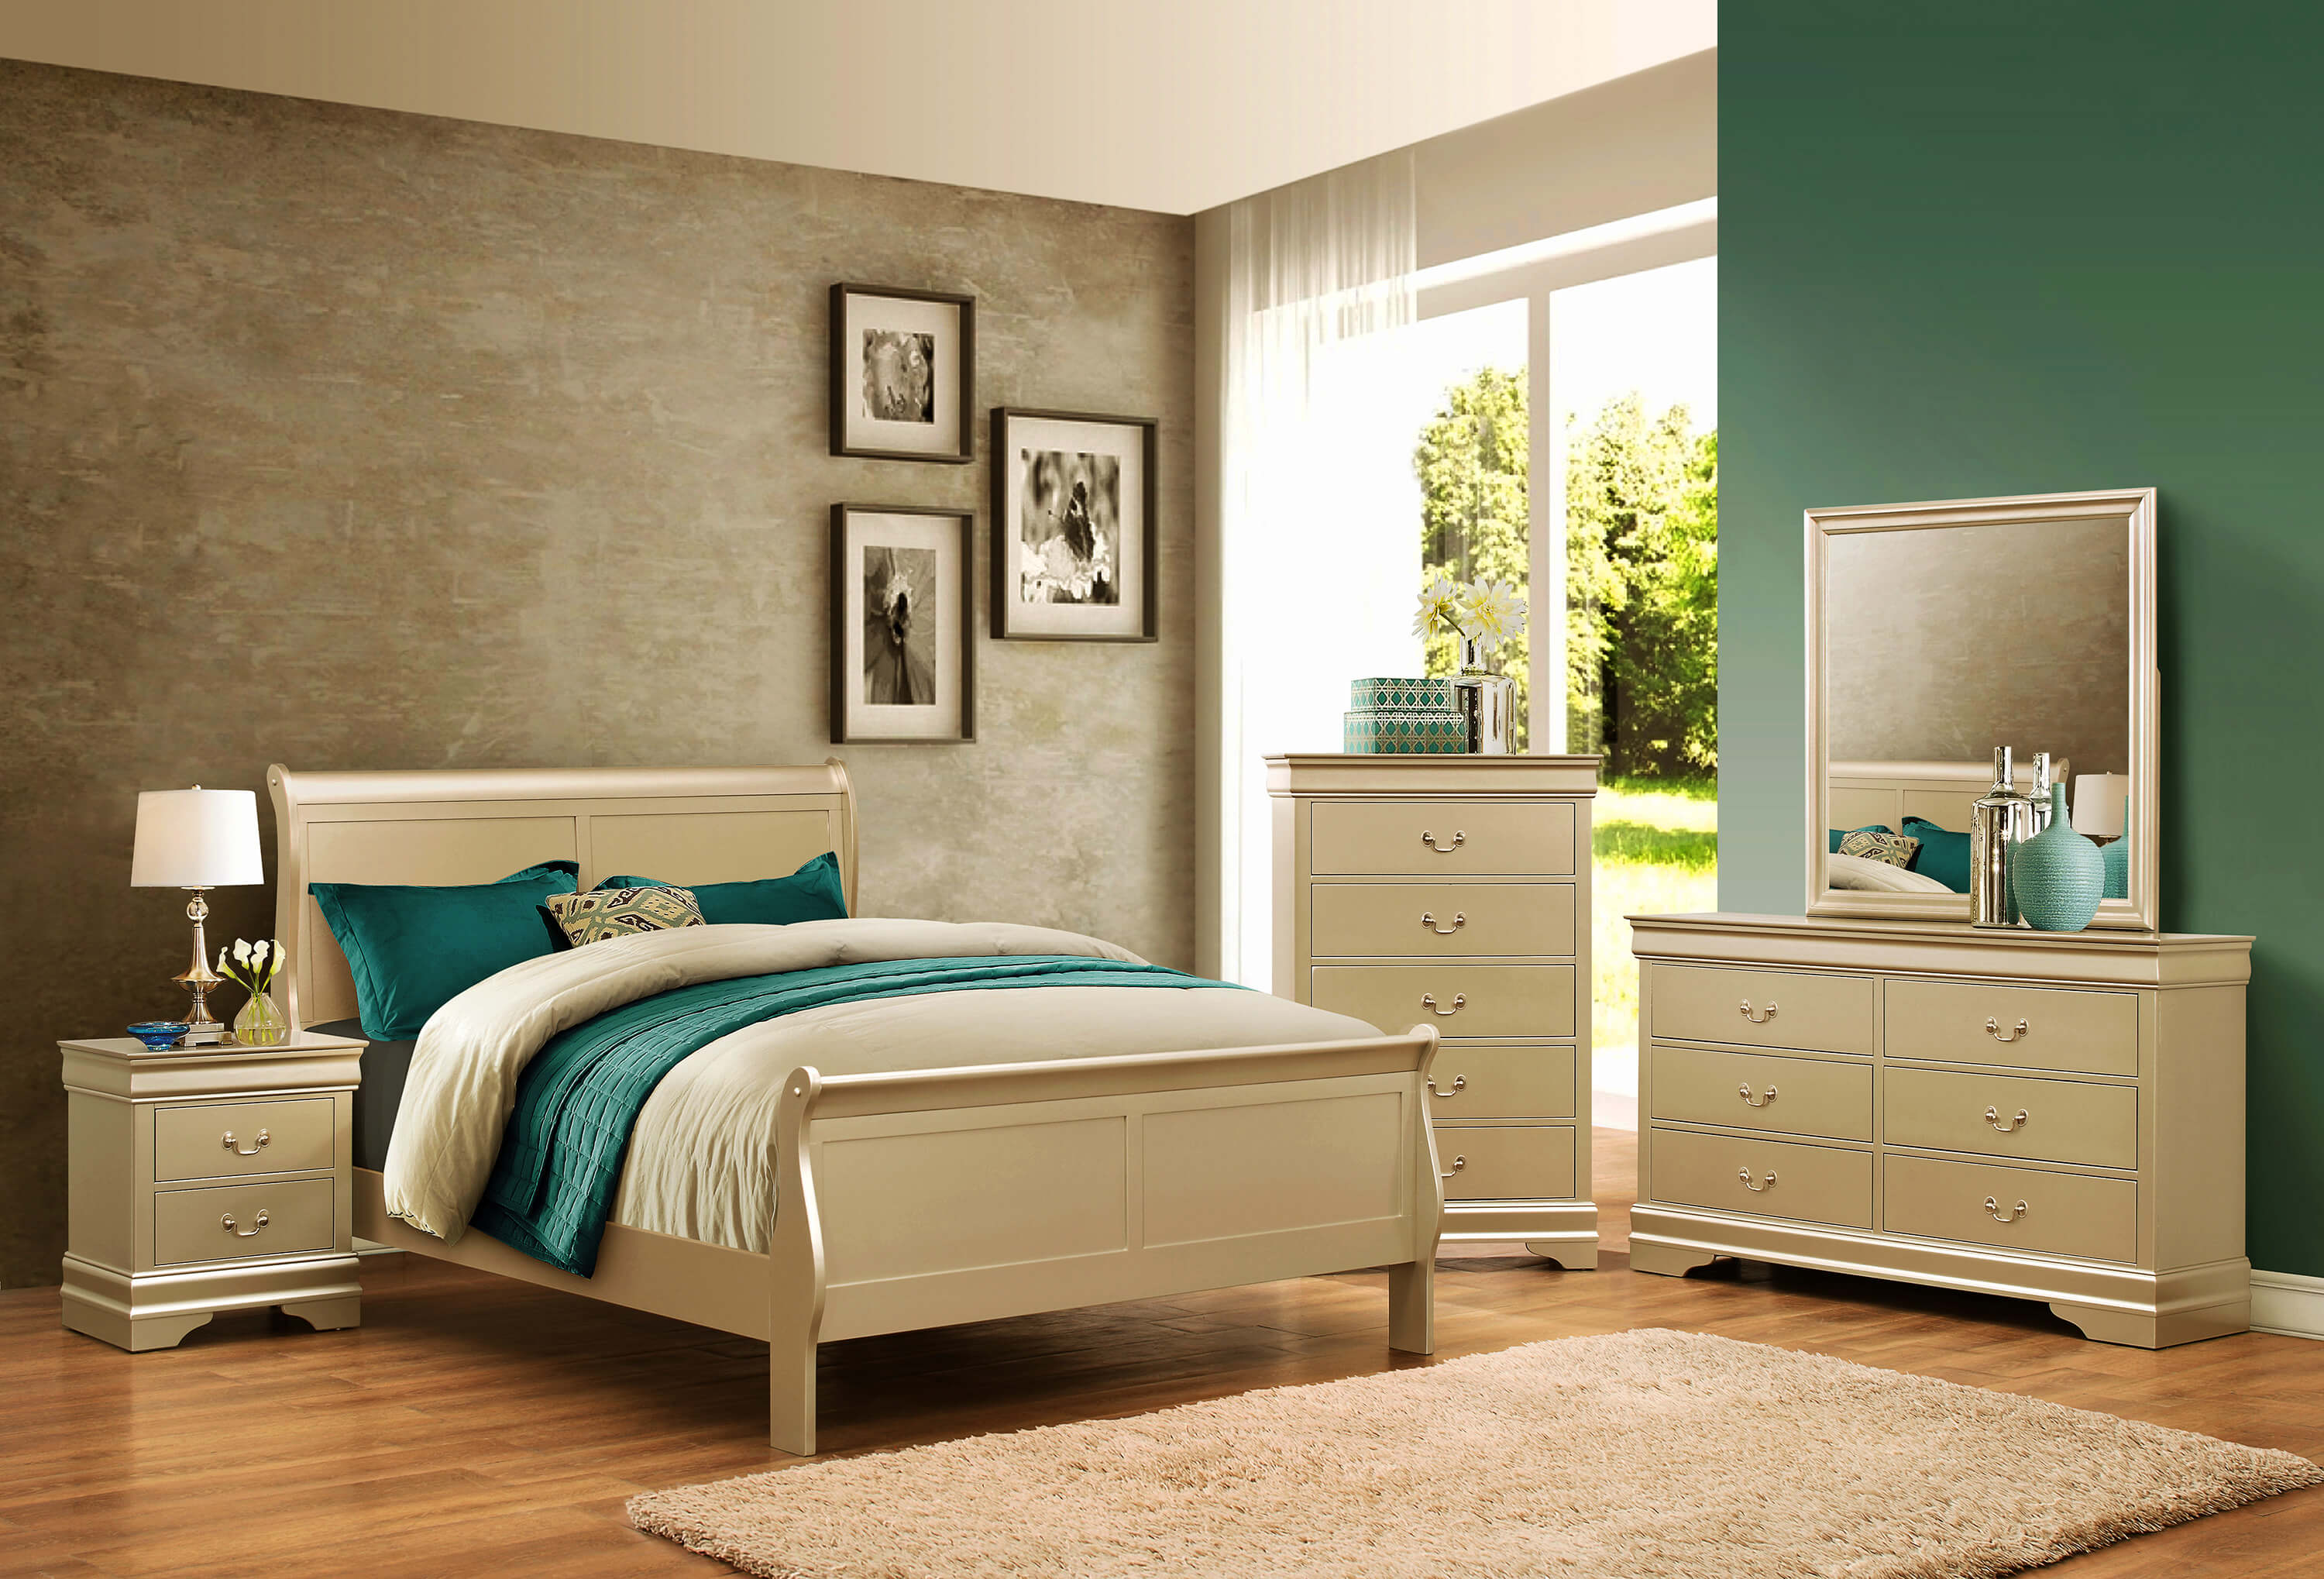 Champagne louis philip bedroom set bedroom furniture sets for Furniture markup